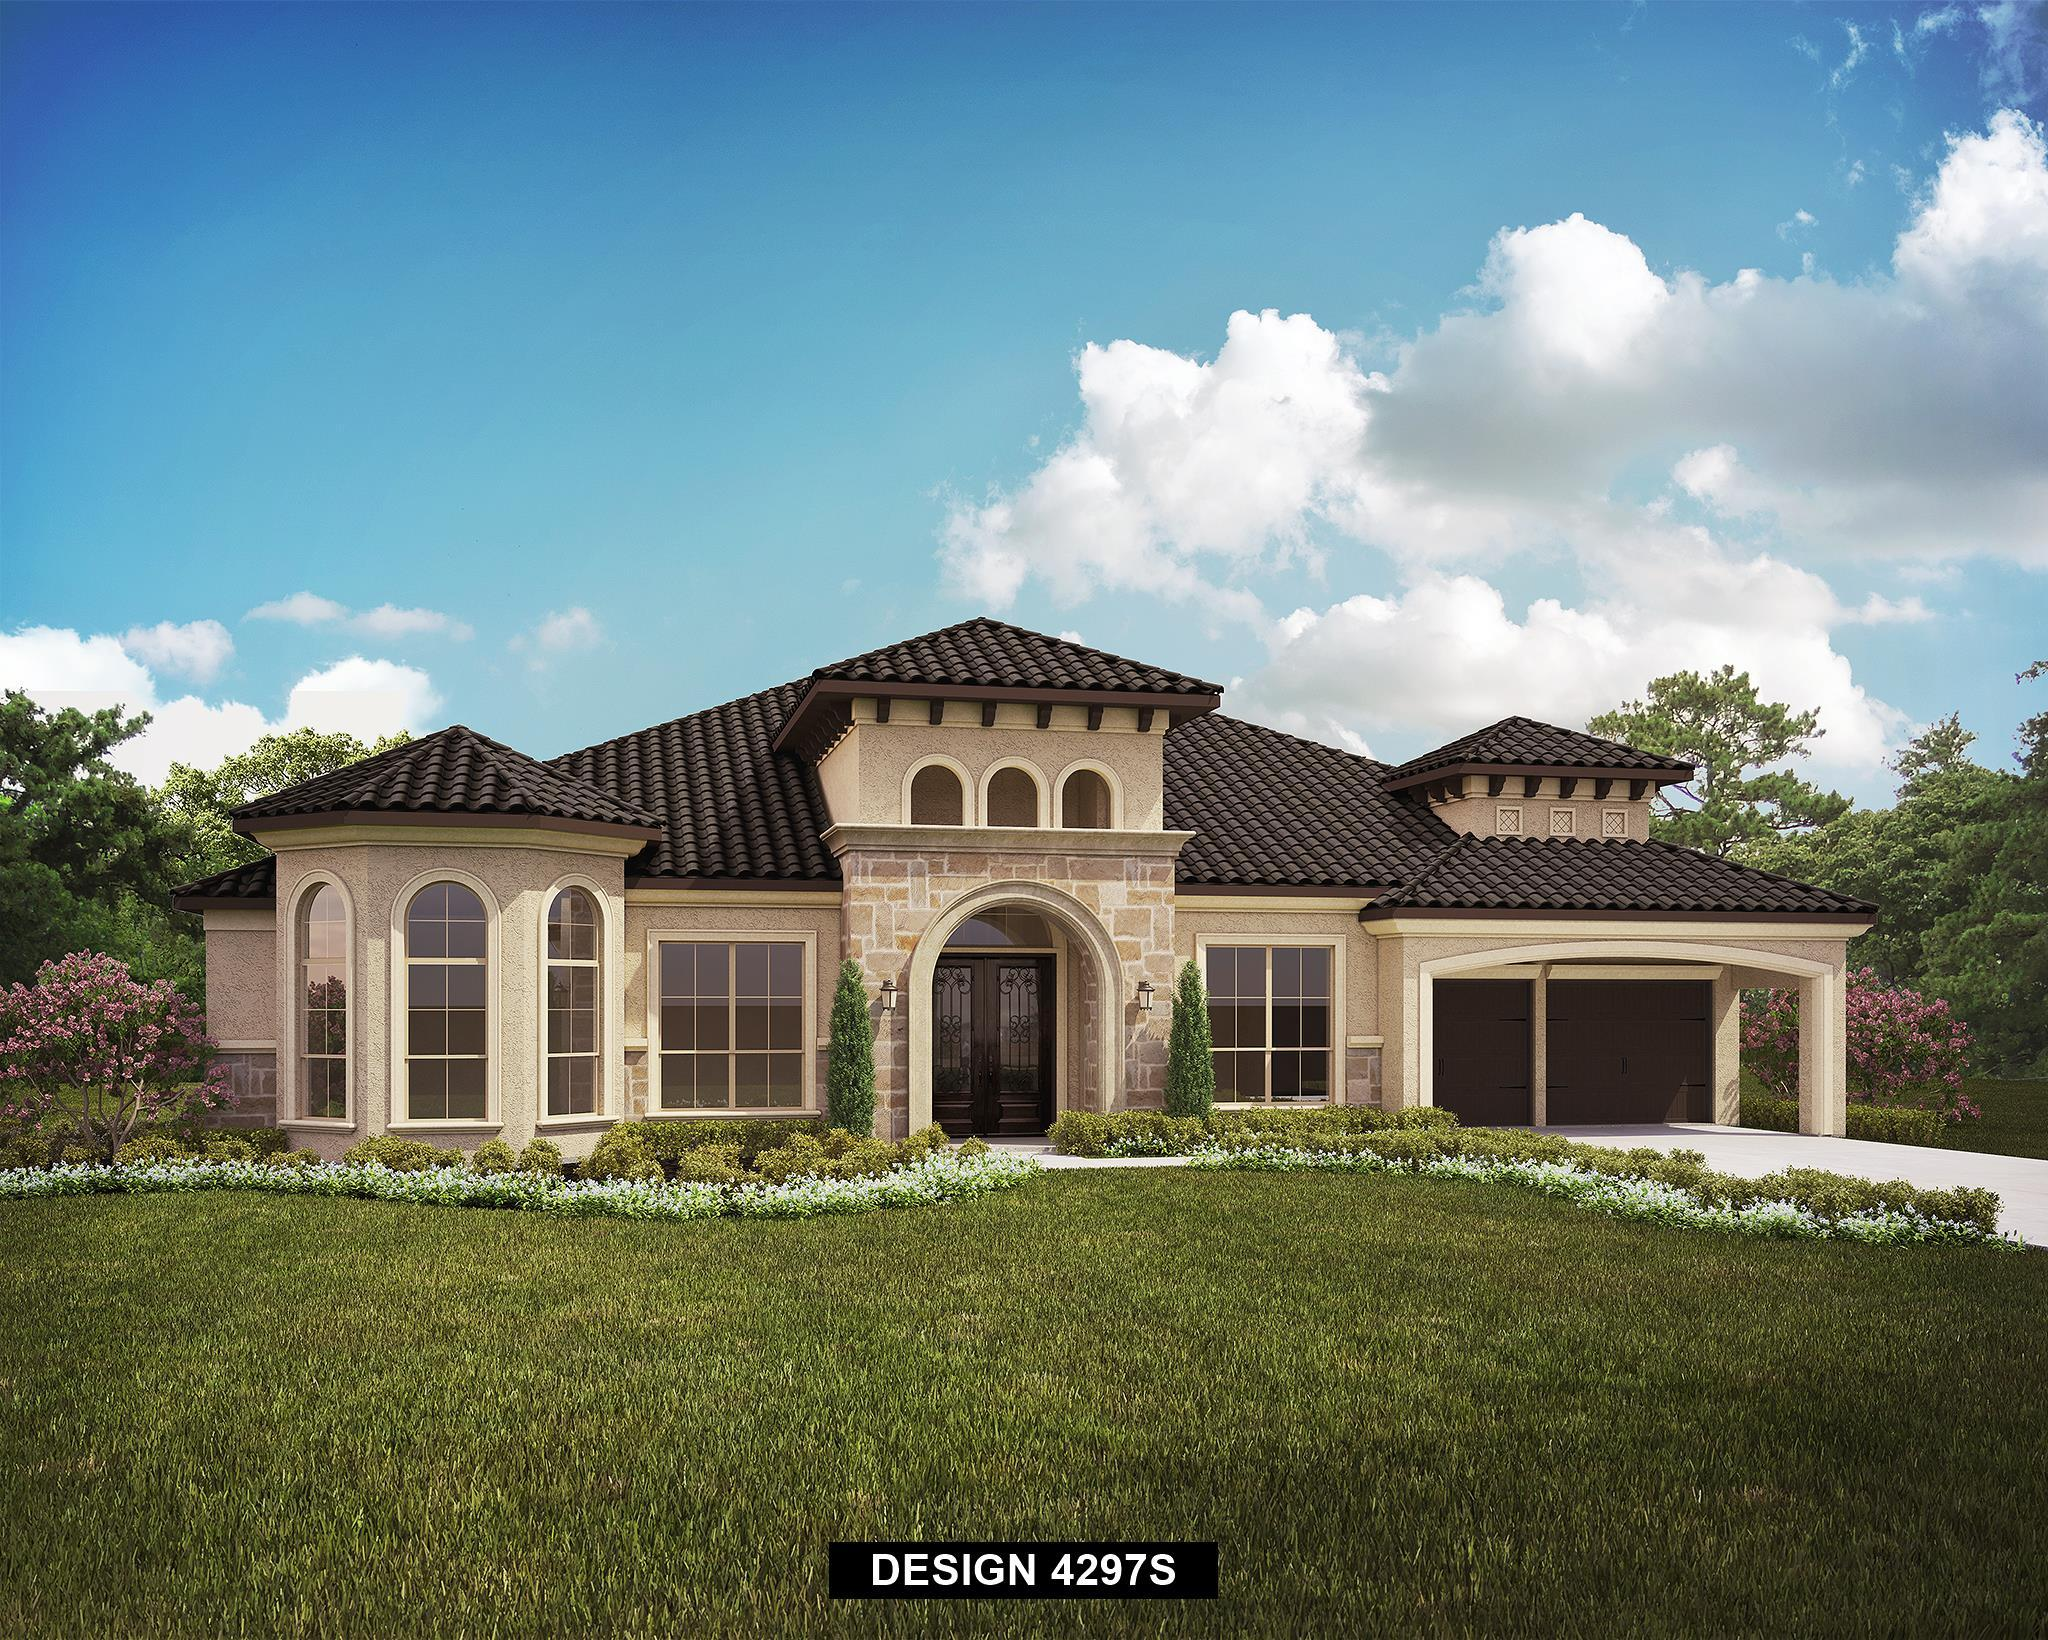 Single Family for Sale at Havenwood At Hunters Crossing - 4297s 2509 Otter Way New Braunfels, Texas 78132 United States